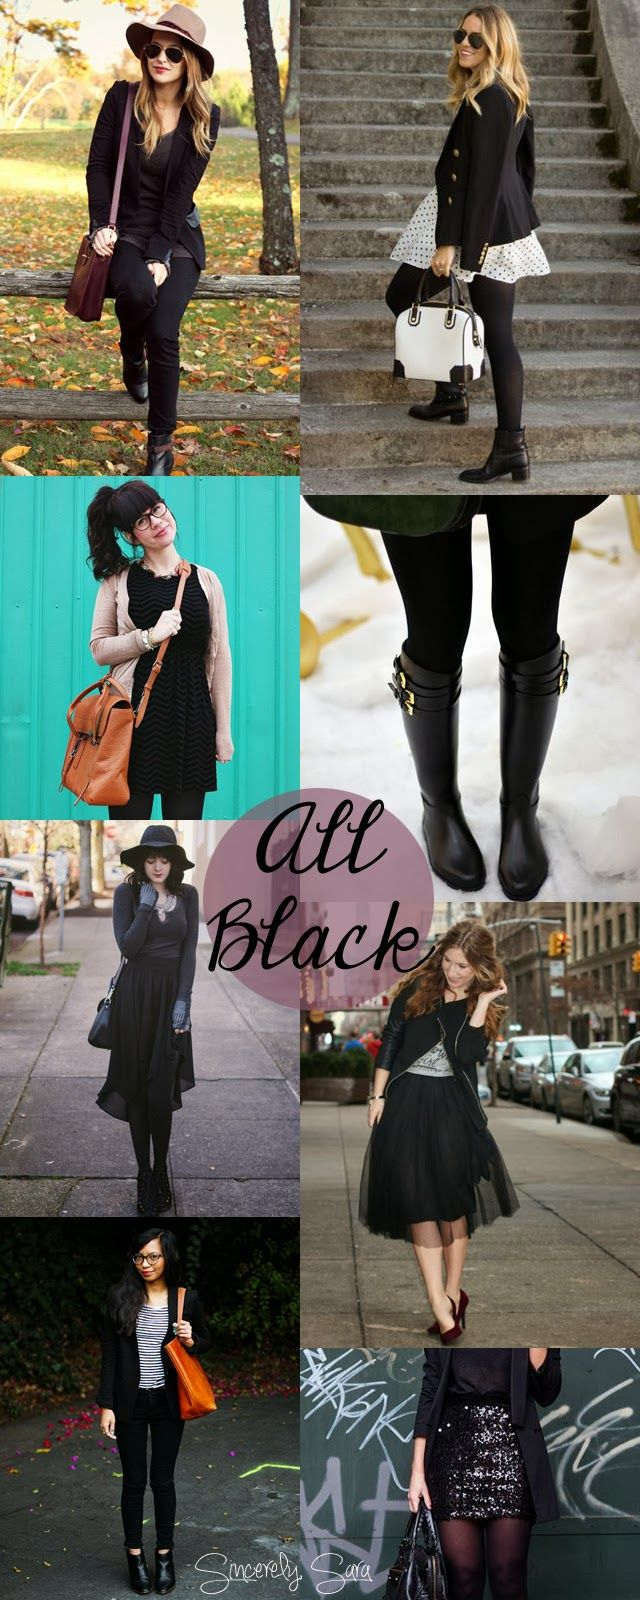 Inspiration: All Black Outfits